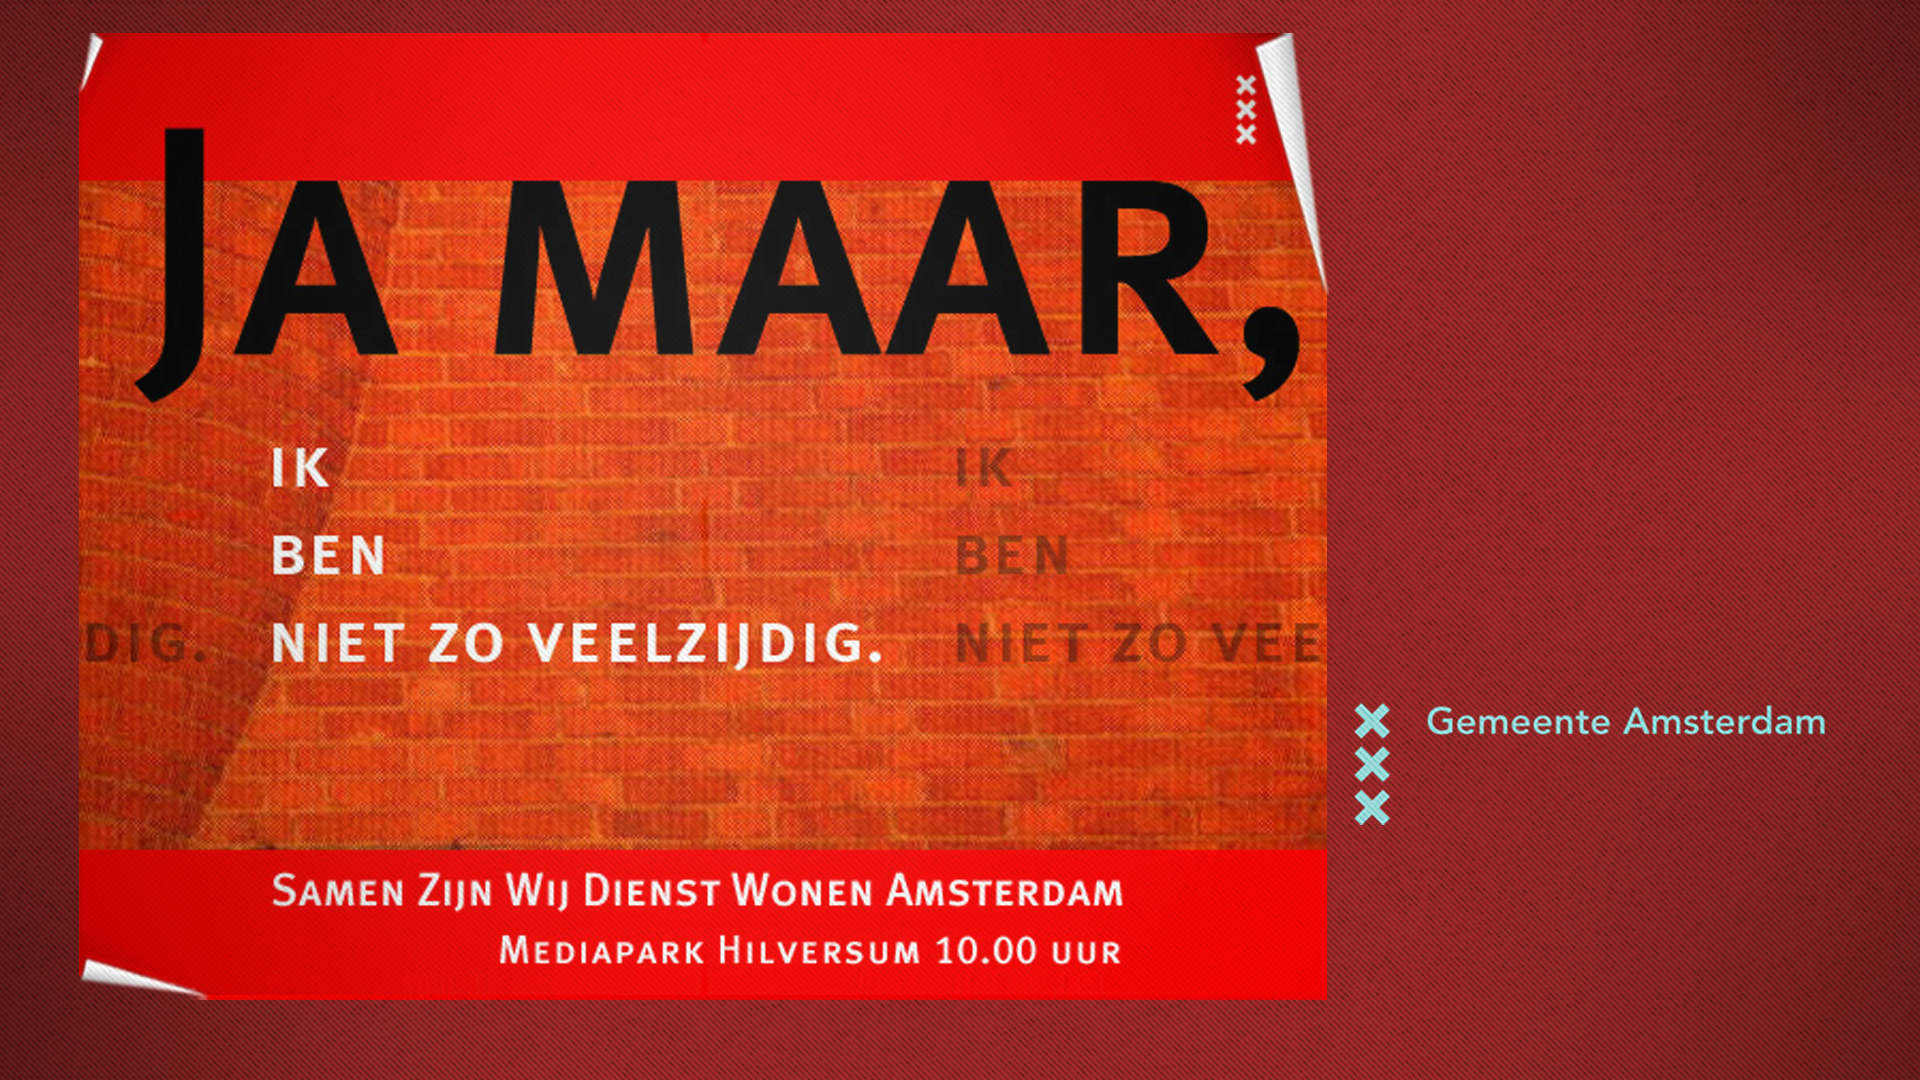 Amsterdam City. Case. Visuals art direction, design, email campagne. Sham Ramessar